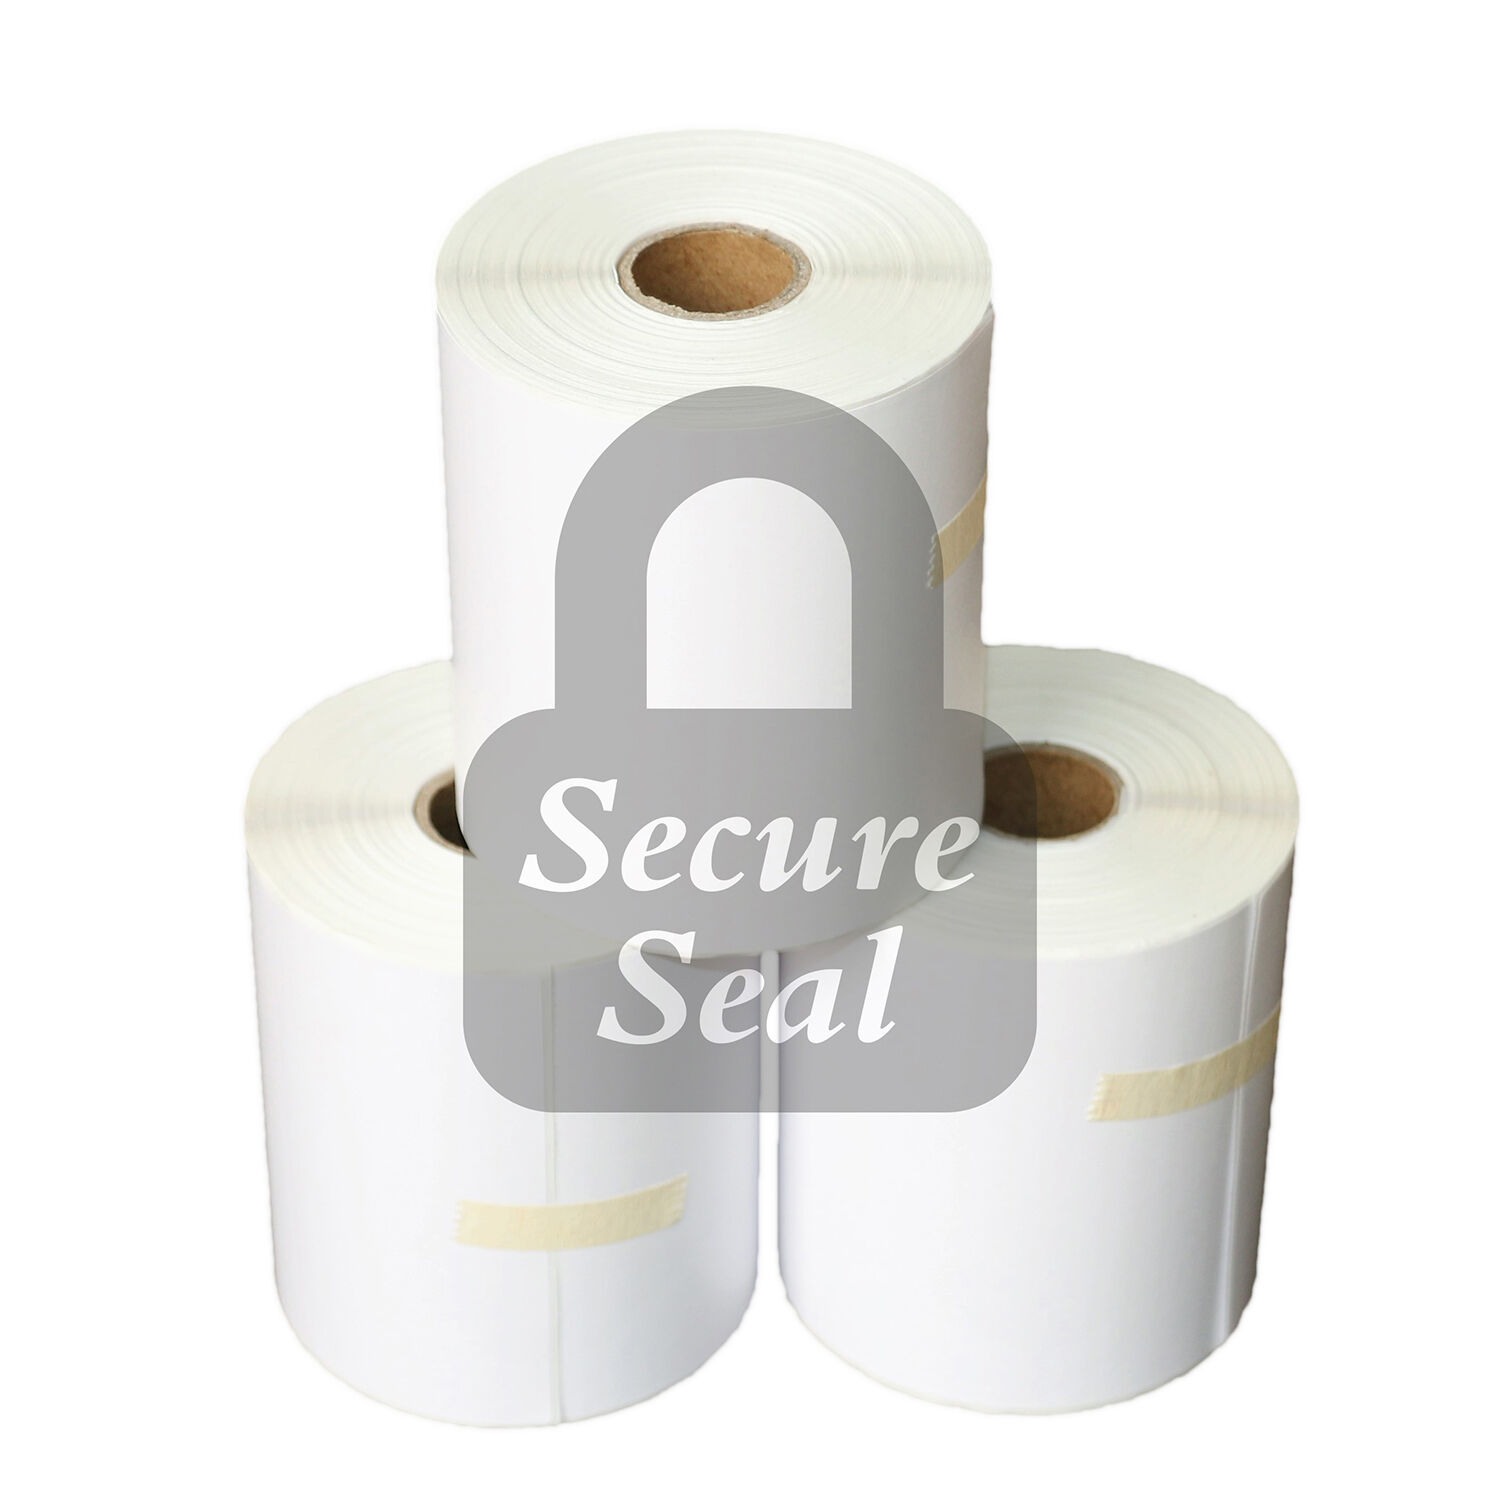 80 Rolls 4x6 Direct Thermal Label 250 roll for Zebra Eltron Printers 4  x 6